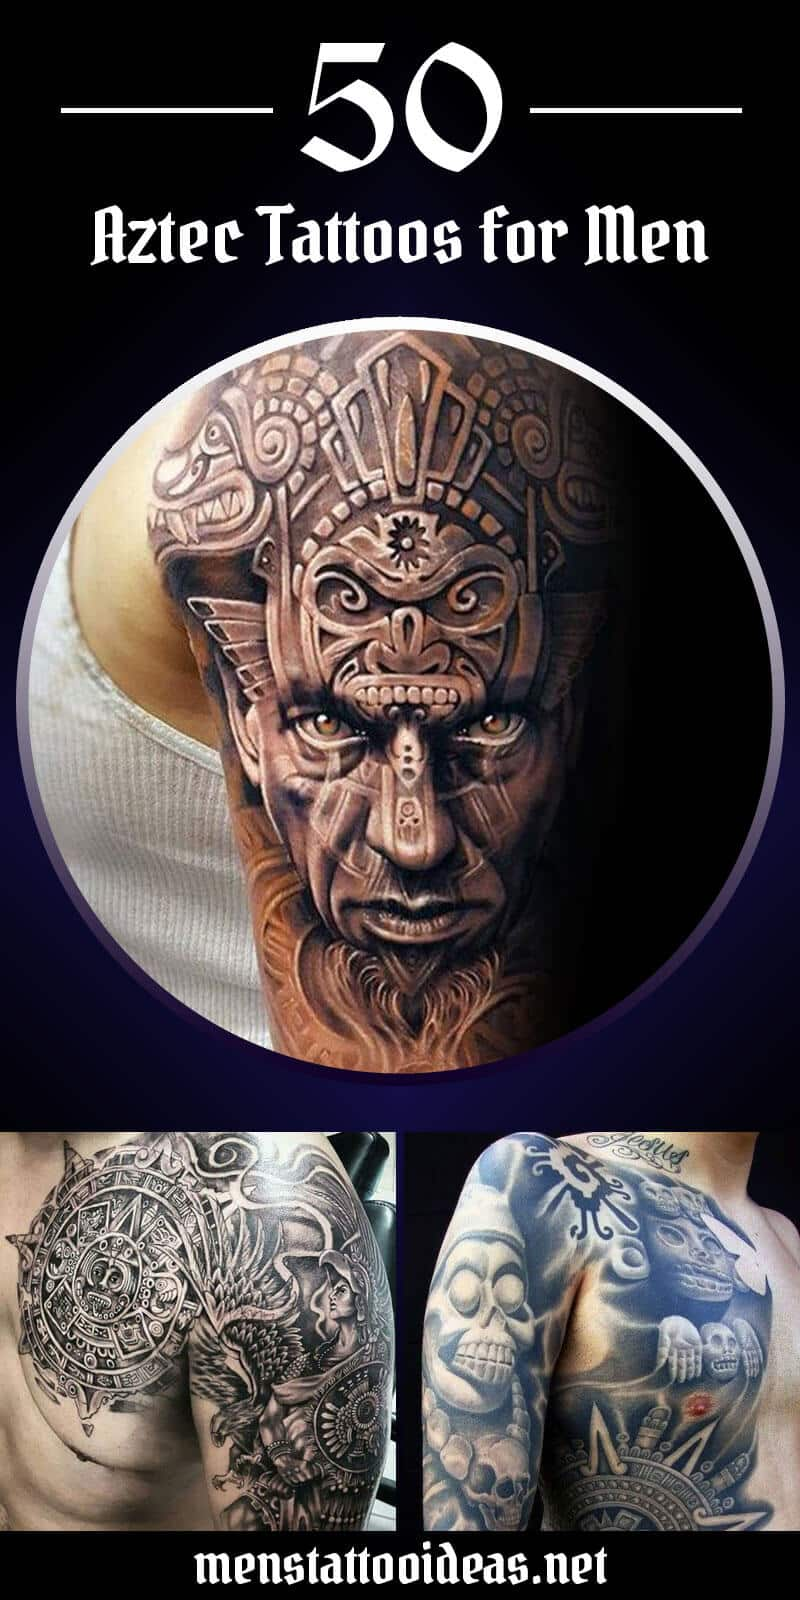 aztec-tattoos-for-men